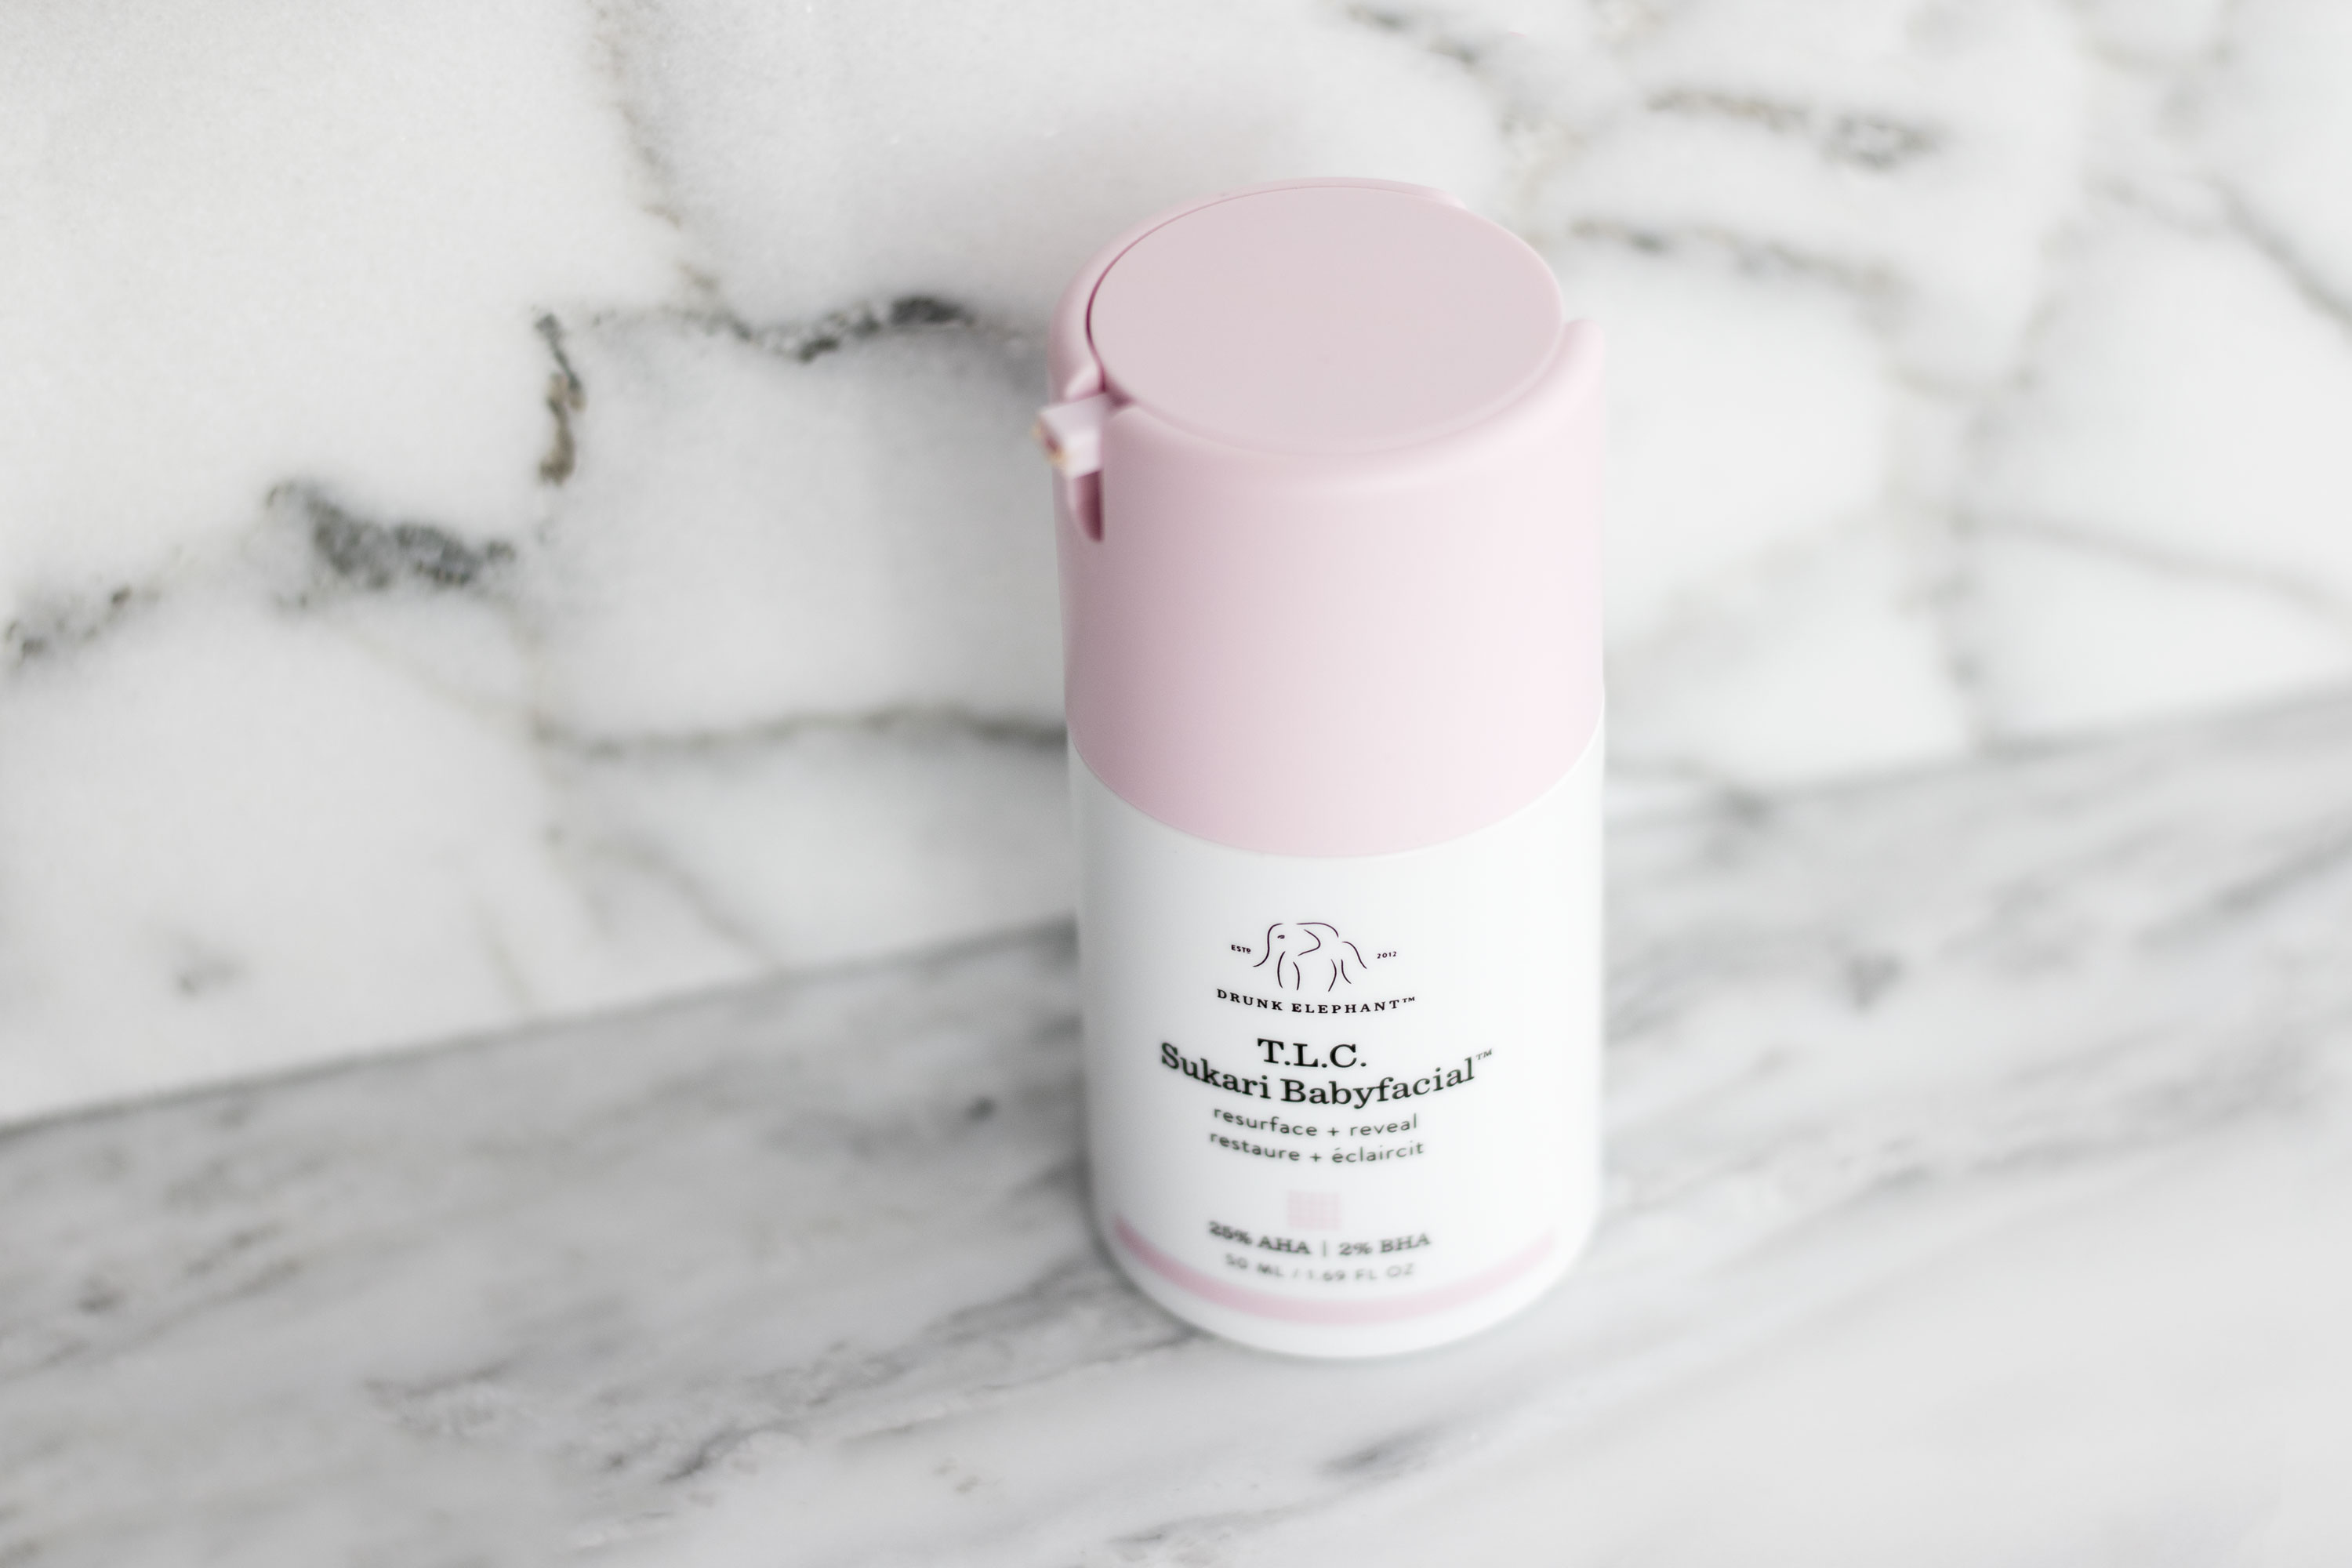 cult beauty products worth the cult status- Drunk Elephant Babyfacial